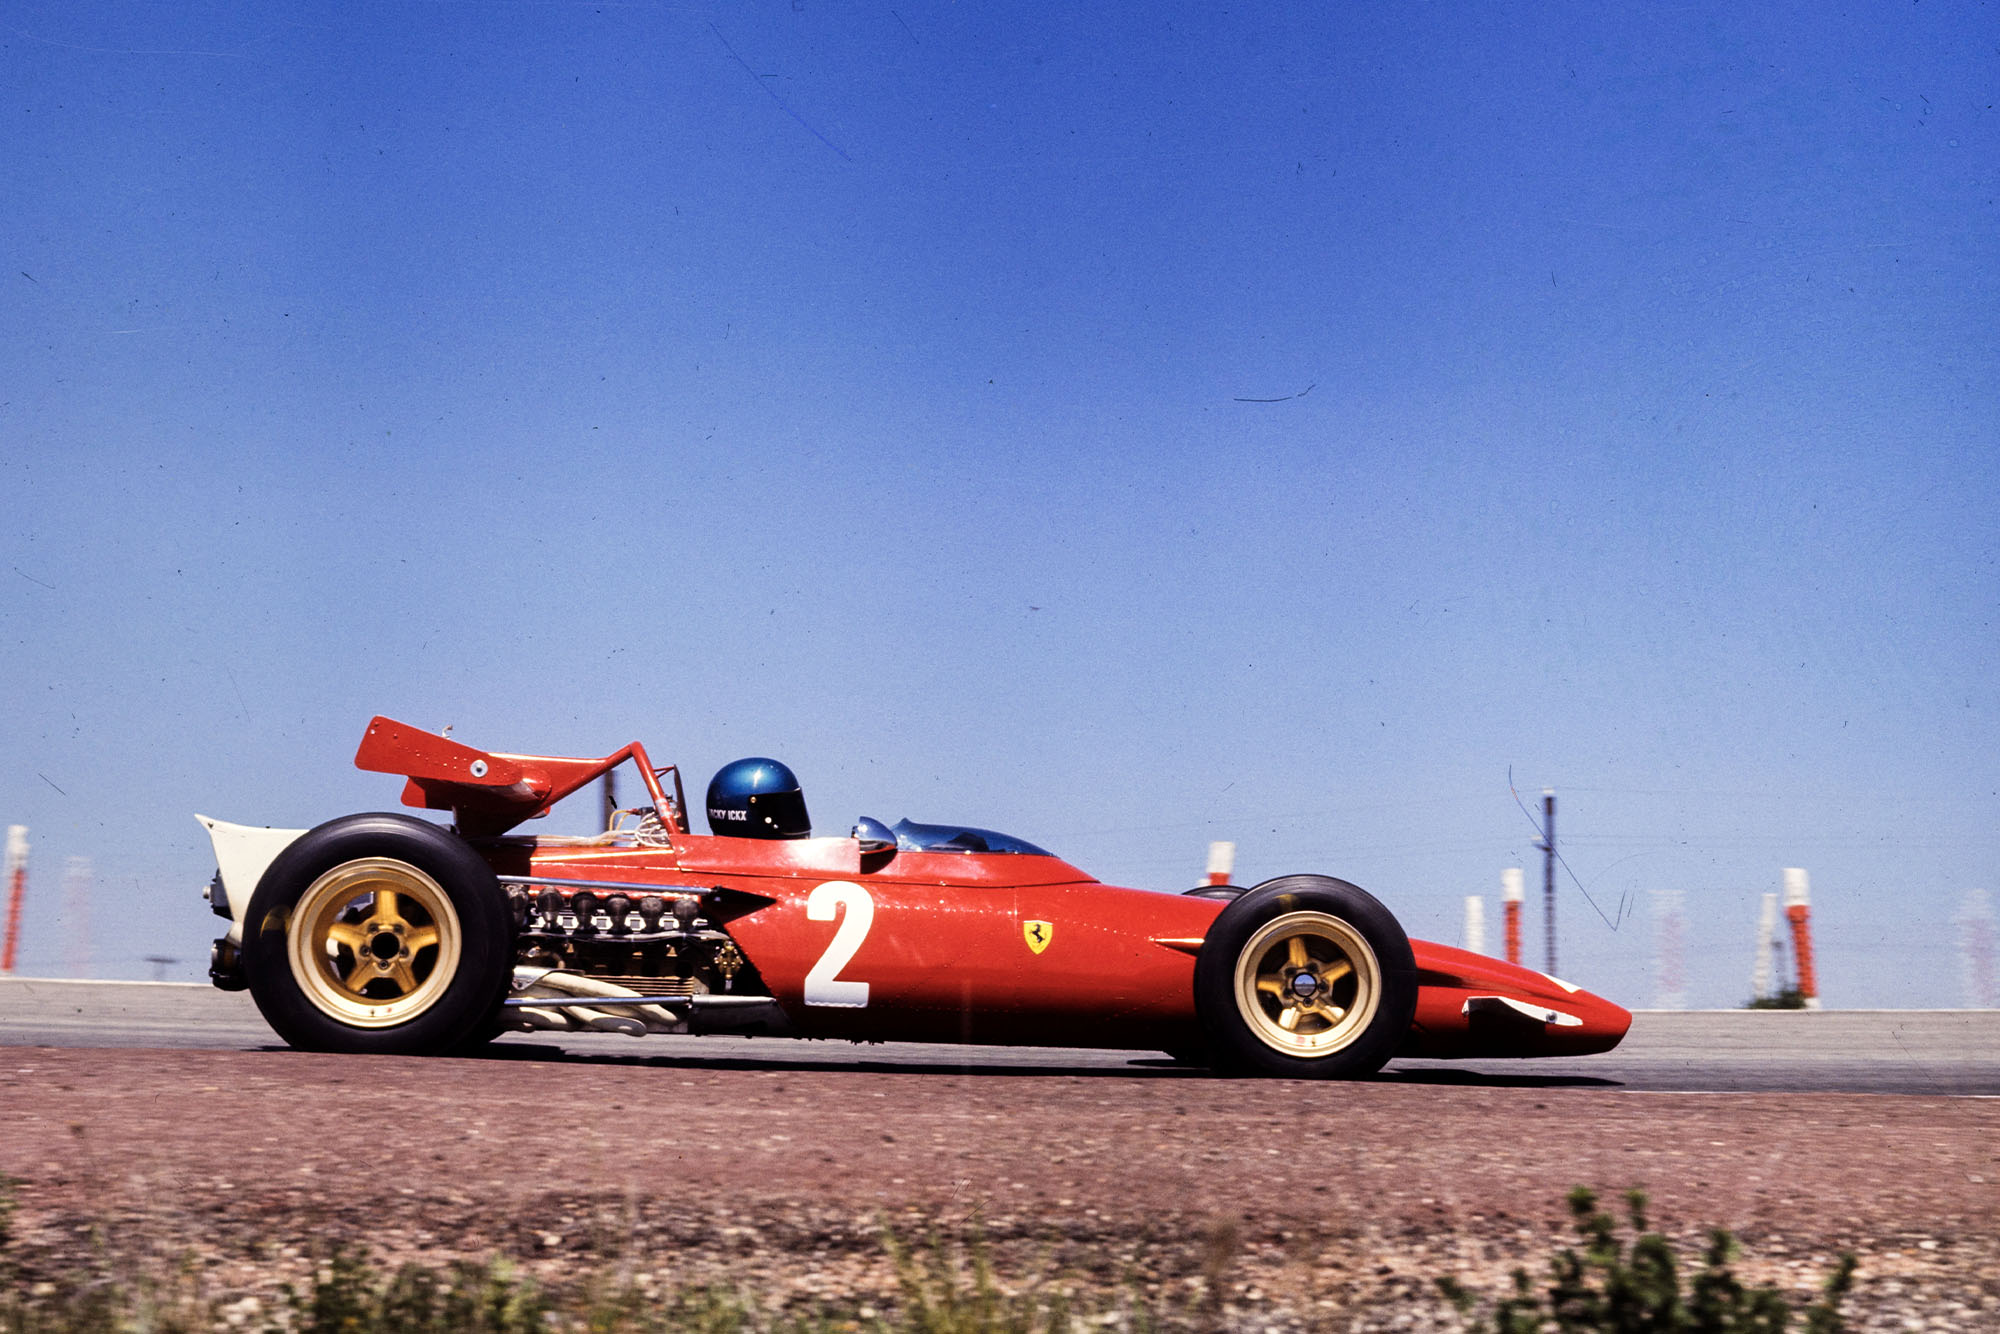 Jacky Ickx in his Ferrari at the 1970 Spanish Grand Prix